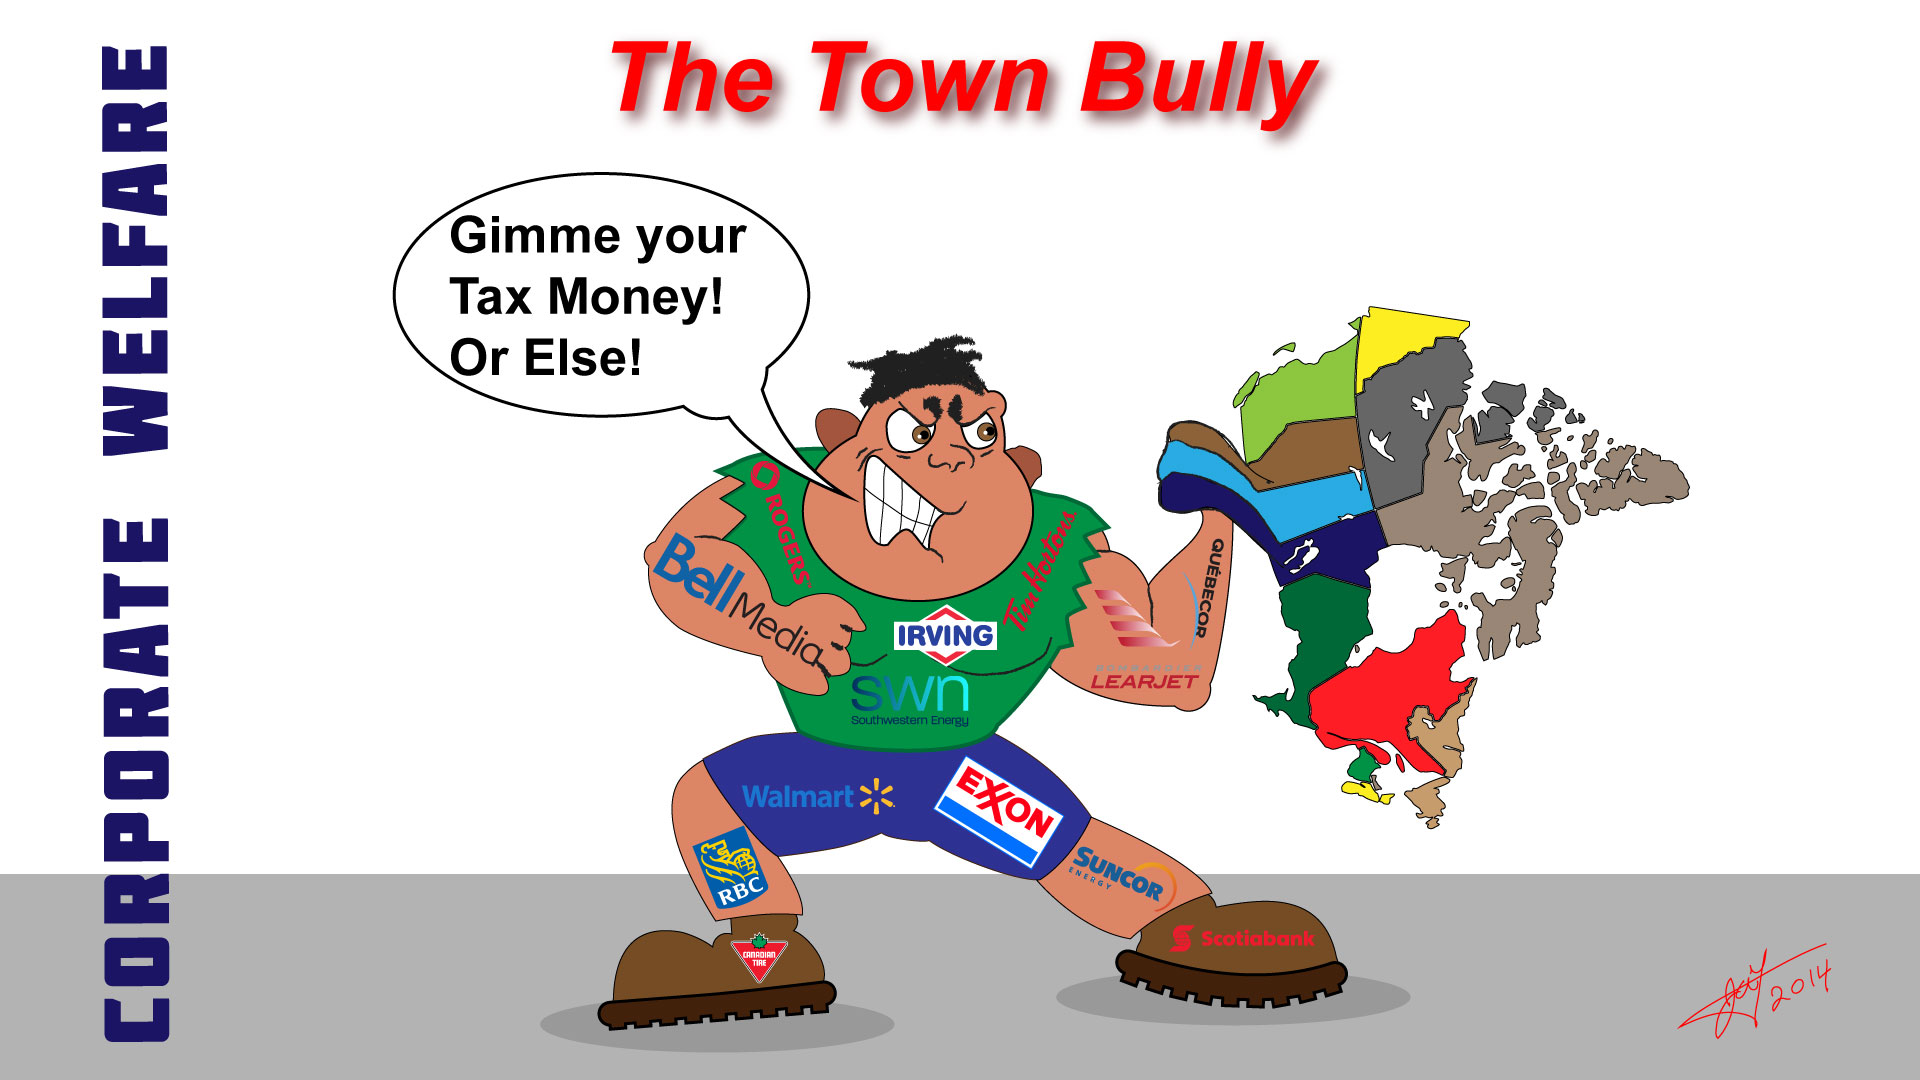 The town Bully